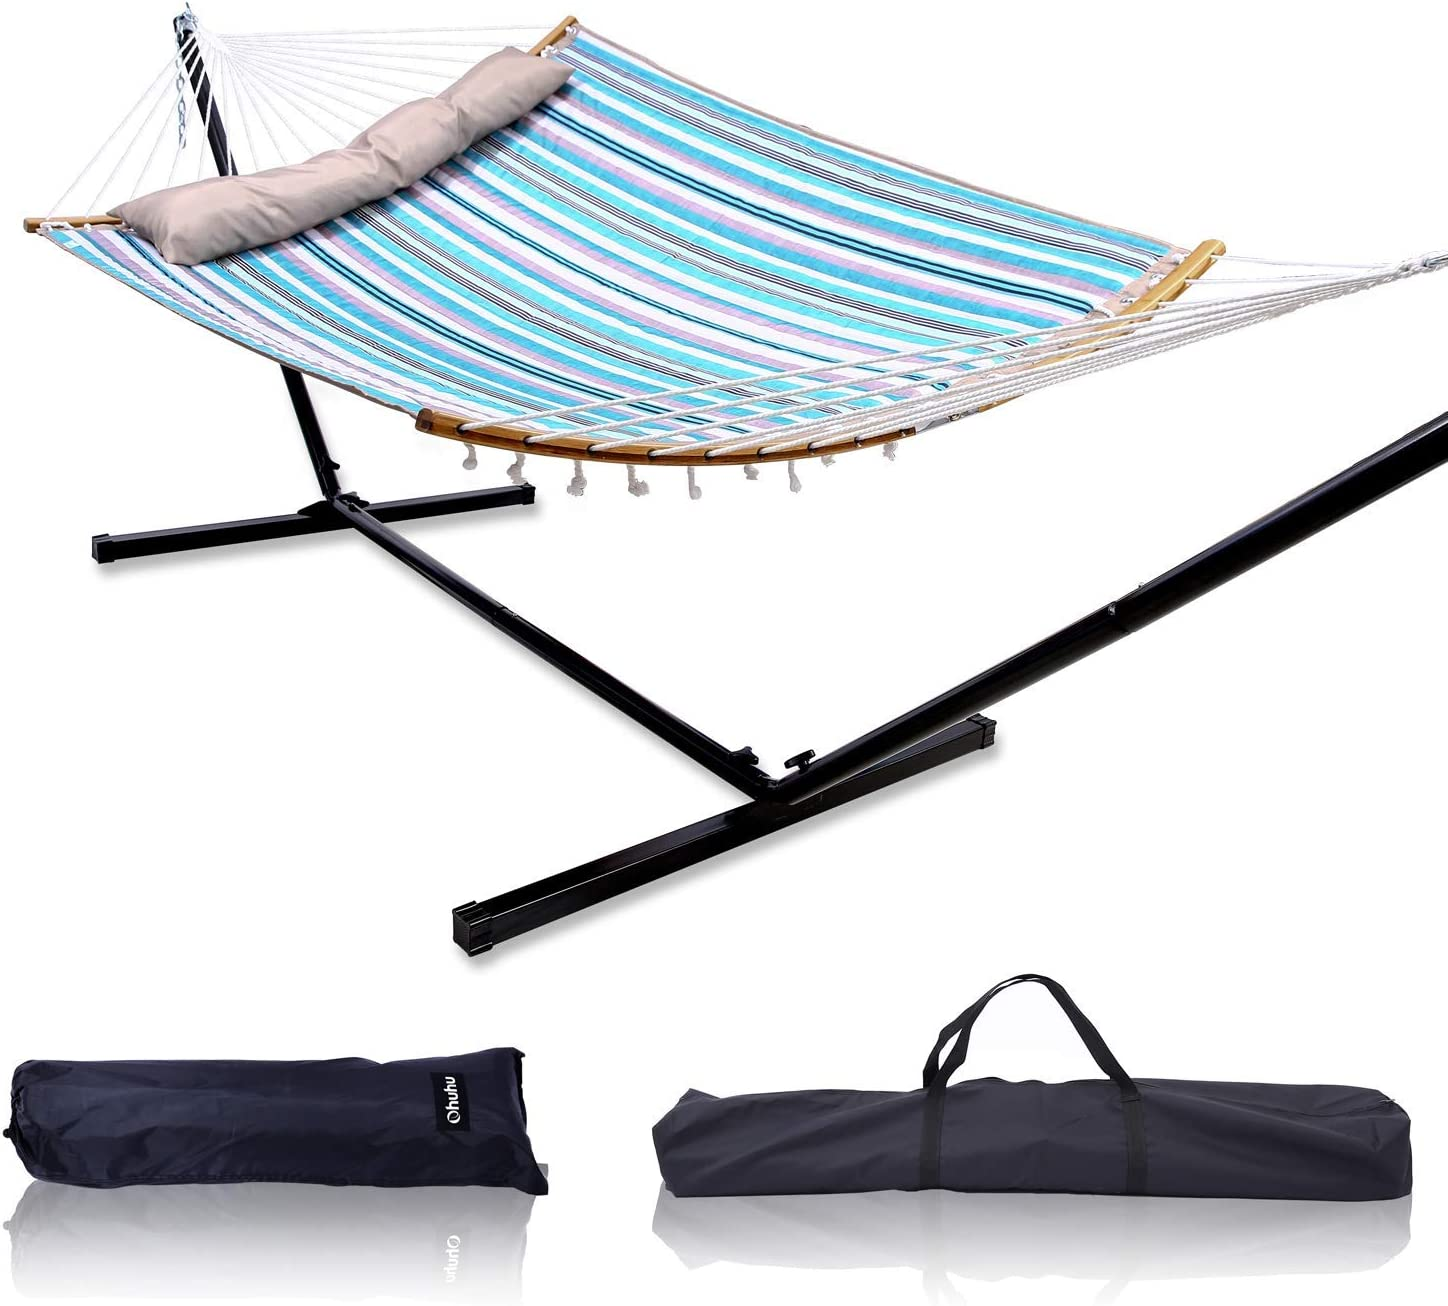 "Ohuhu Double Hammock with 12.8 FT Hammock Stand, 55"" x 75"" Quilted Fabric Hammock Swing with Strong Curved-Bar Bamboo & Pillow, Stable Detachable Metal Stand, Bonus 2 Carrying Bag, Blue & White Strip: Furniture & Decor"